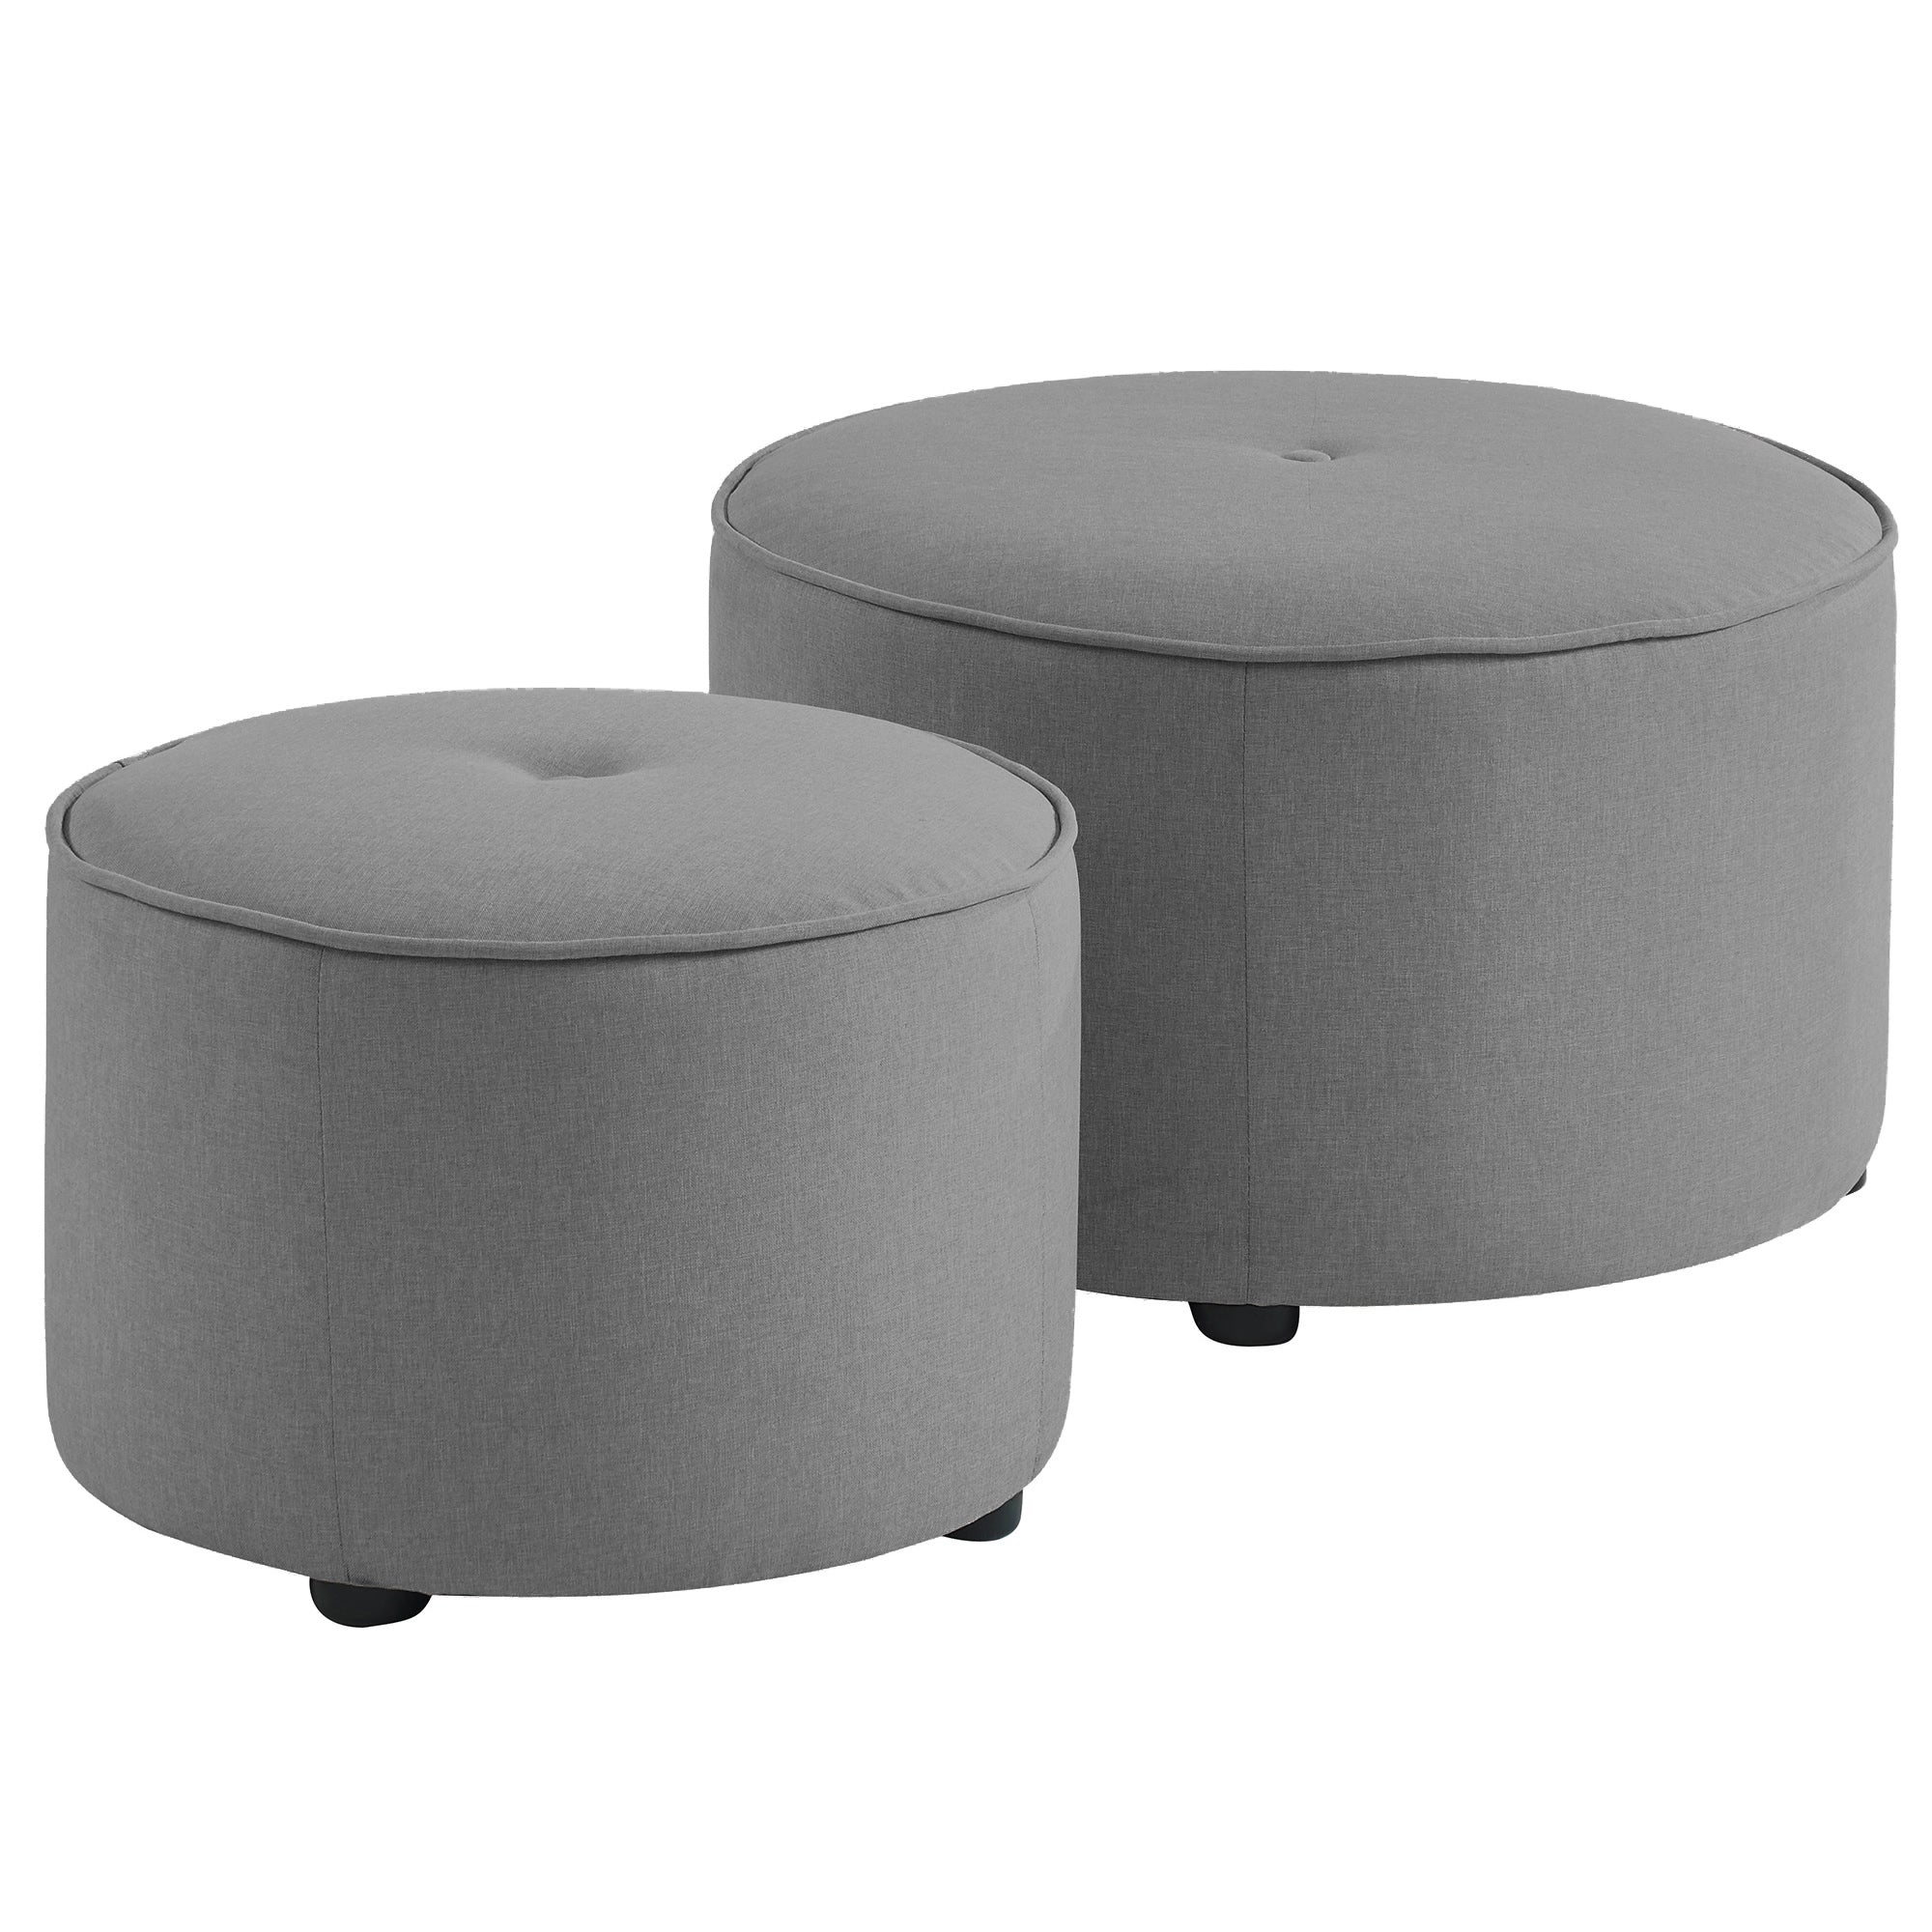 Etro Light Grey Round Ottoman - Set of 2